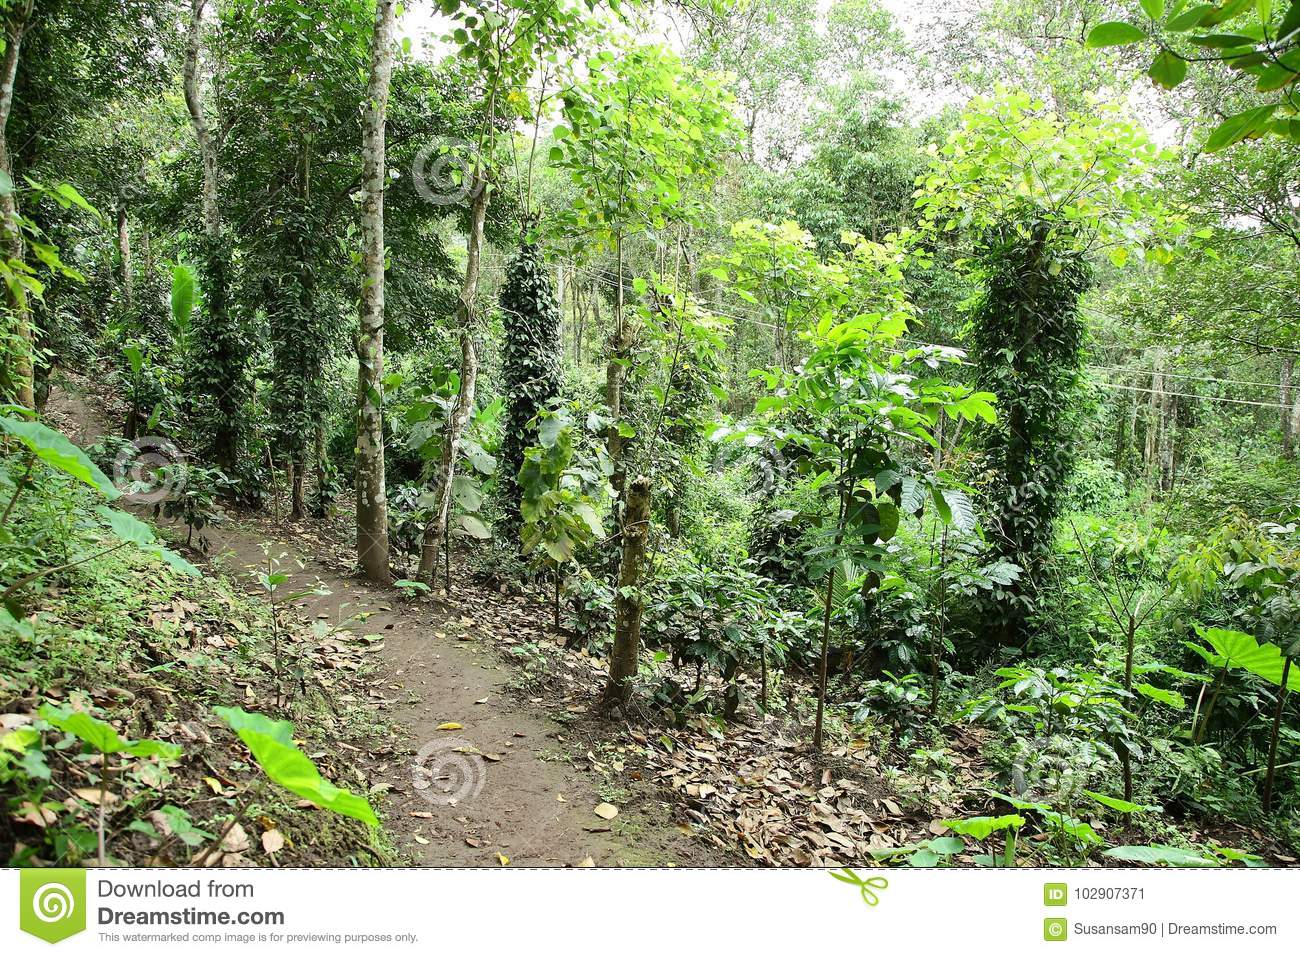 Cover photos for facebook timeline images. Forest Way In The Dense Jungle Stock Image Image Of Foliage Natural 102907371